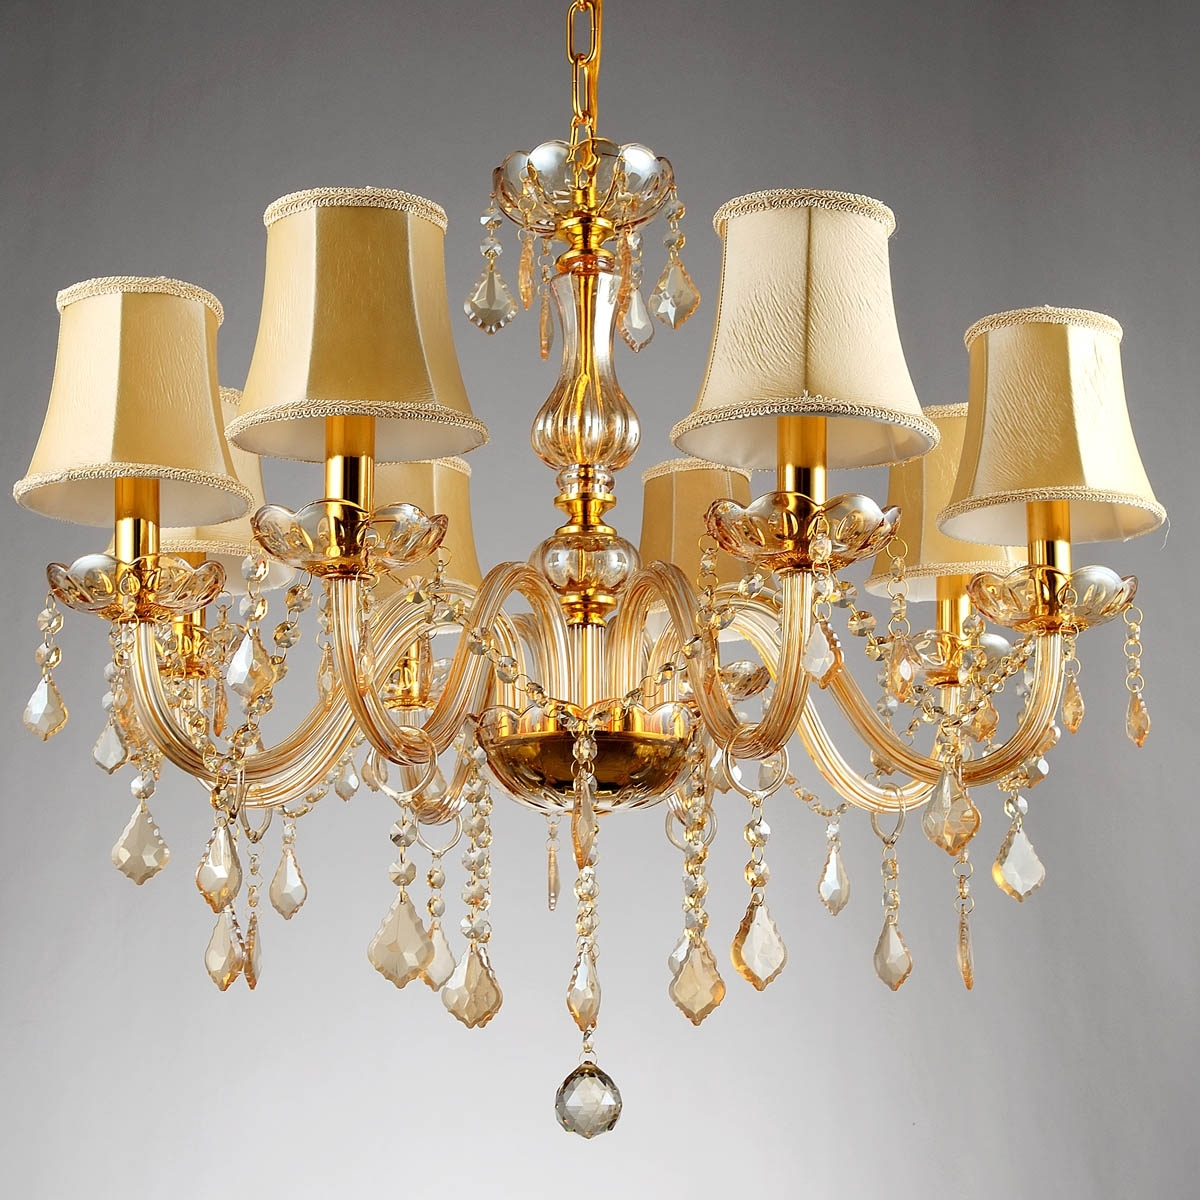 Free Ship 6/8 Arms Fashion Crystal Chandelier Lighting Bedroom Regarding Most Popular Crystal Gold Chandeliers (View 9 of 15)